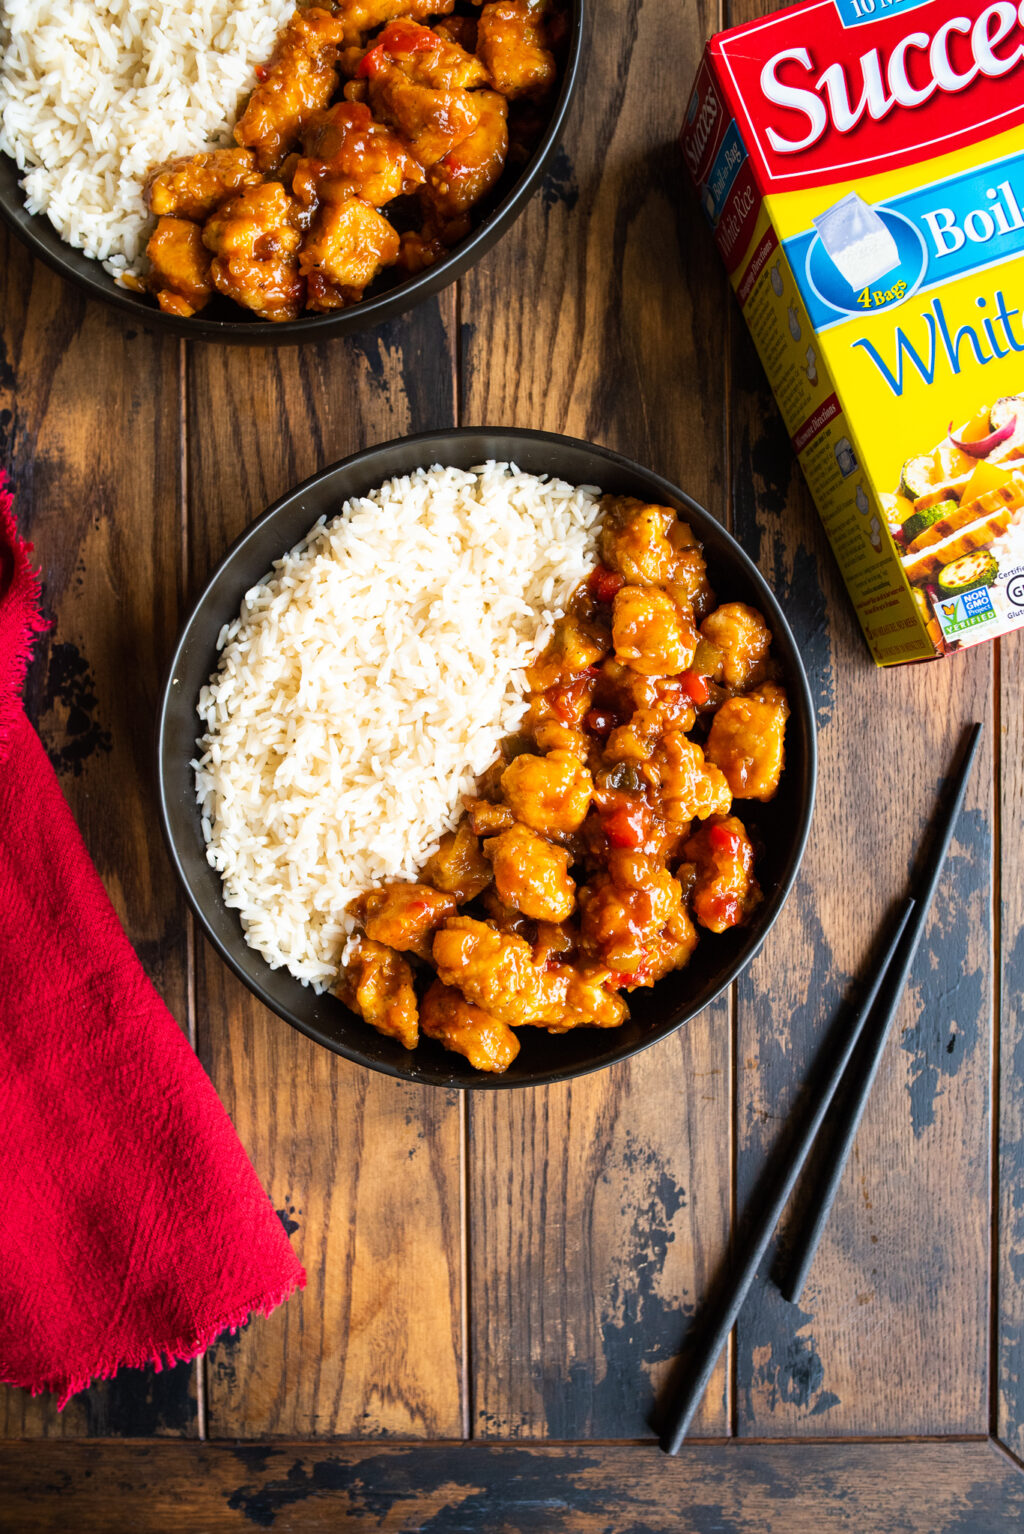 sweet and sour chicken with a box of success rice